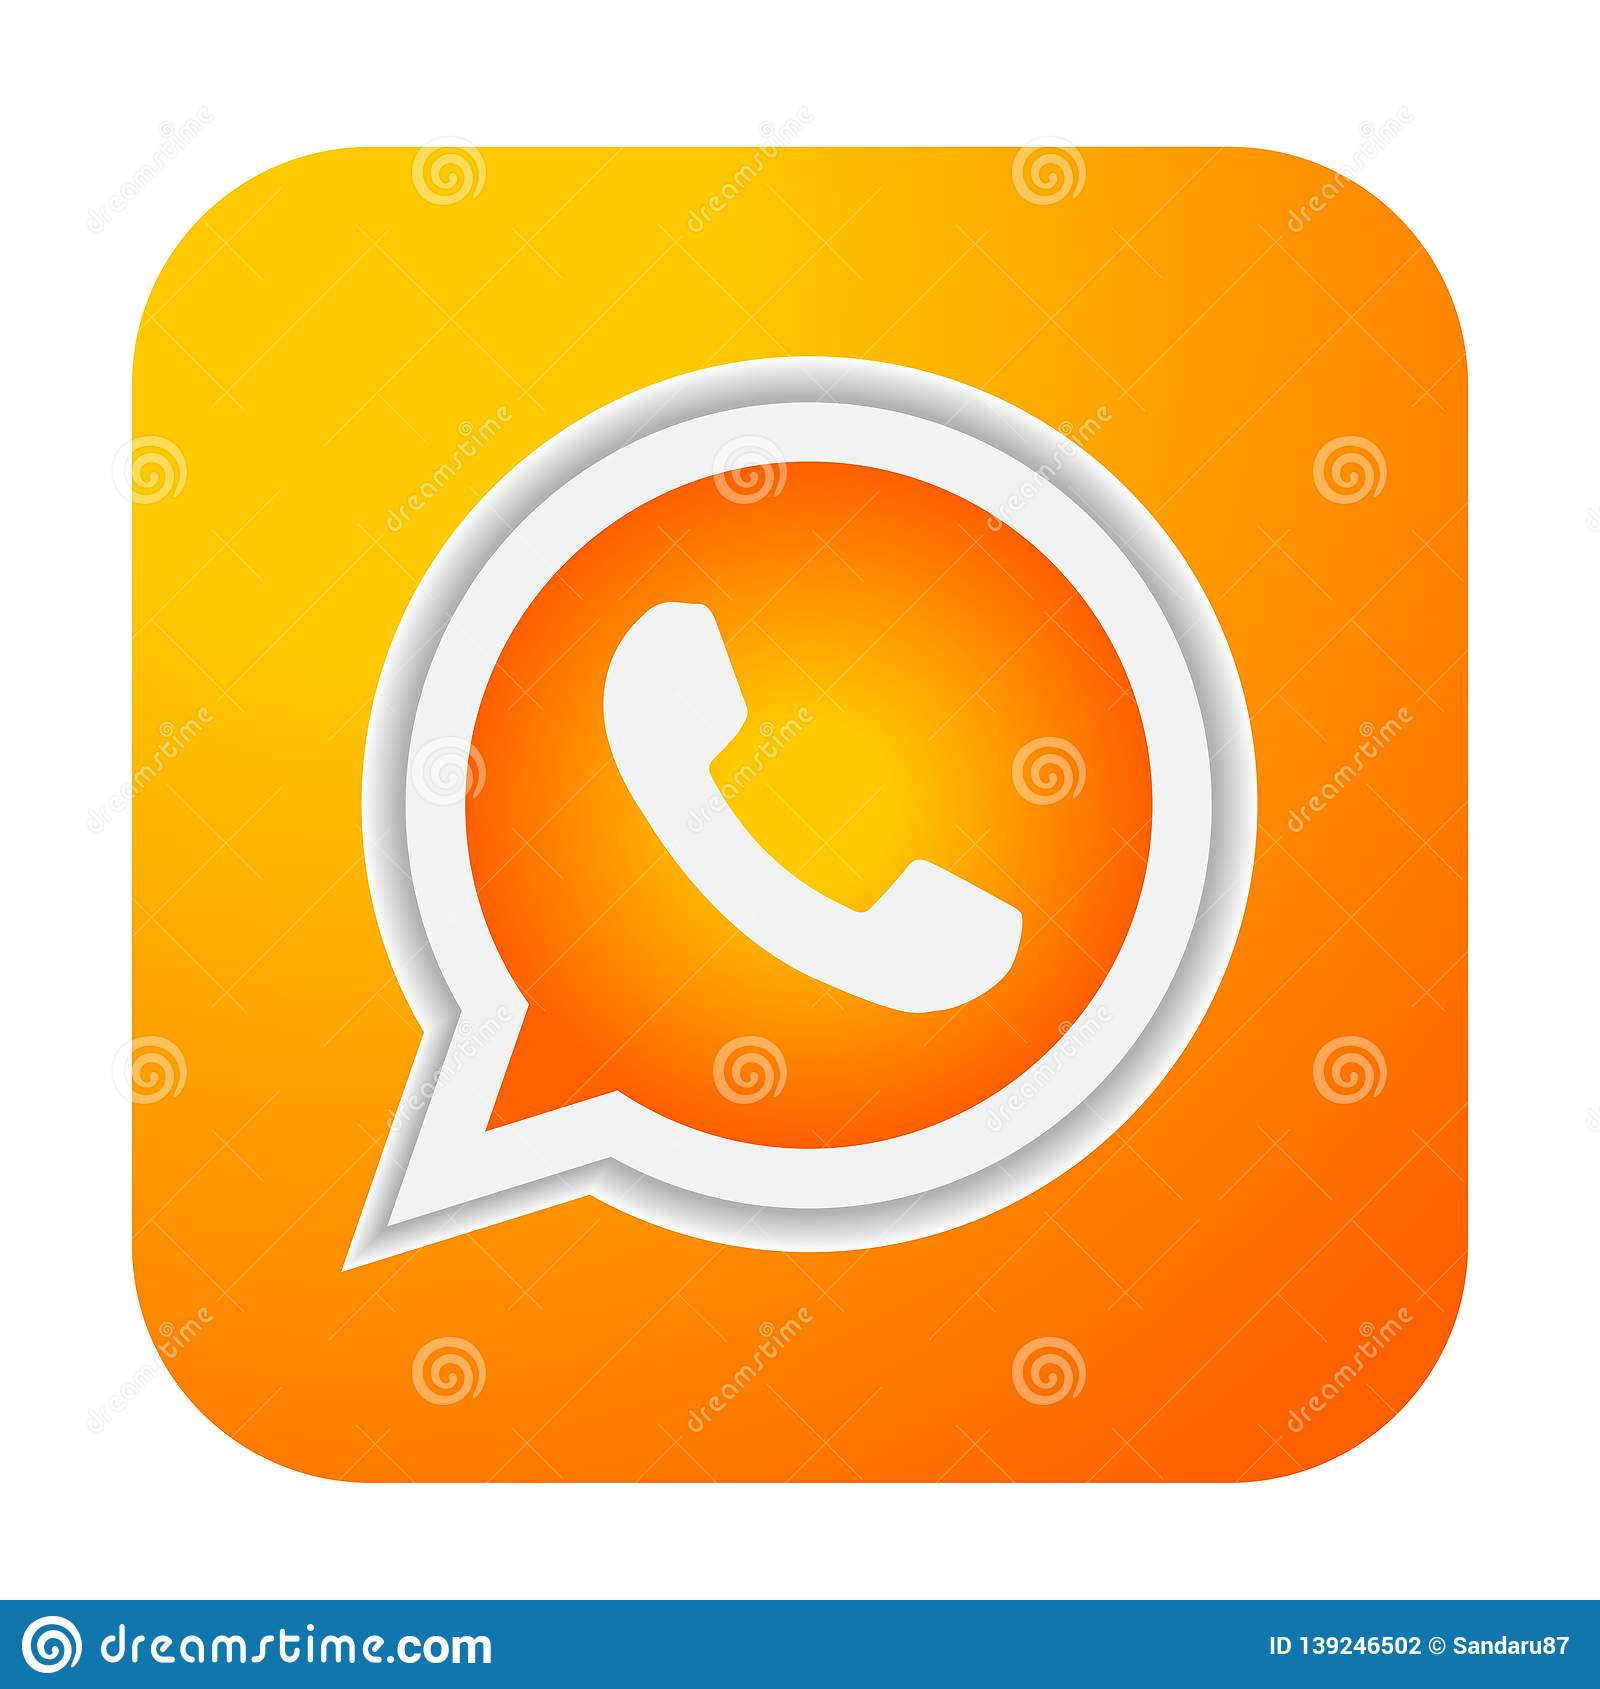 WhatsApp Icon Logo Element Sign Vector In Orange Gold Mobile